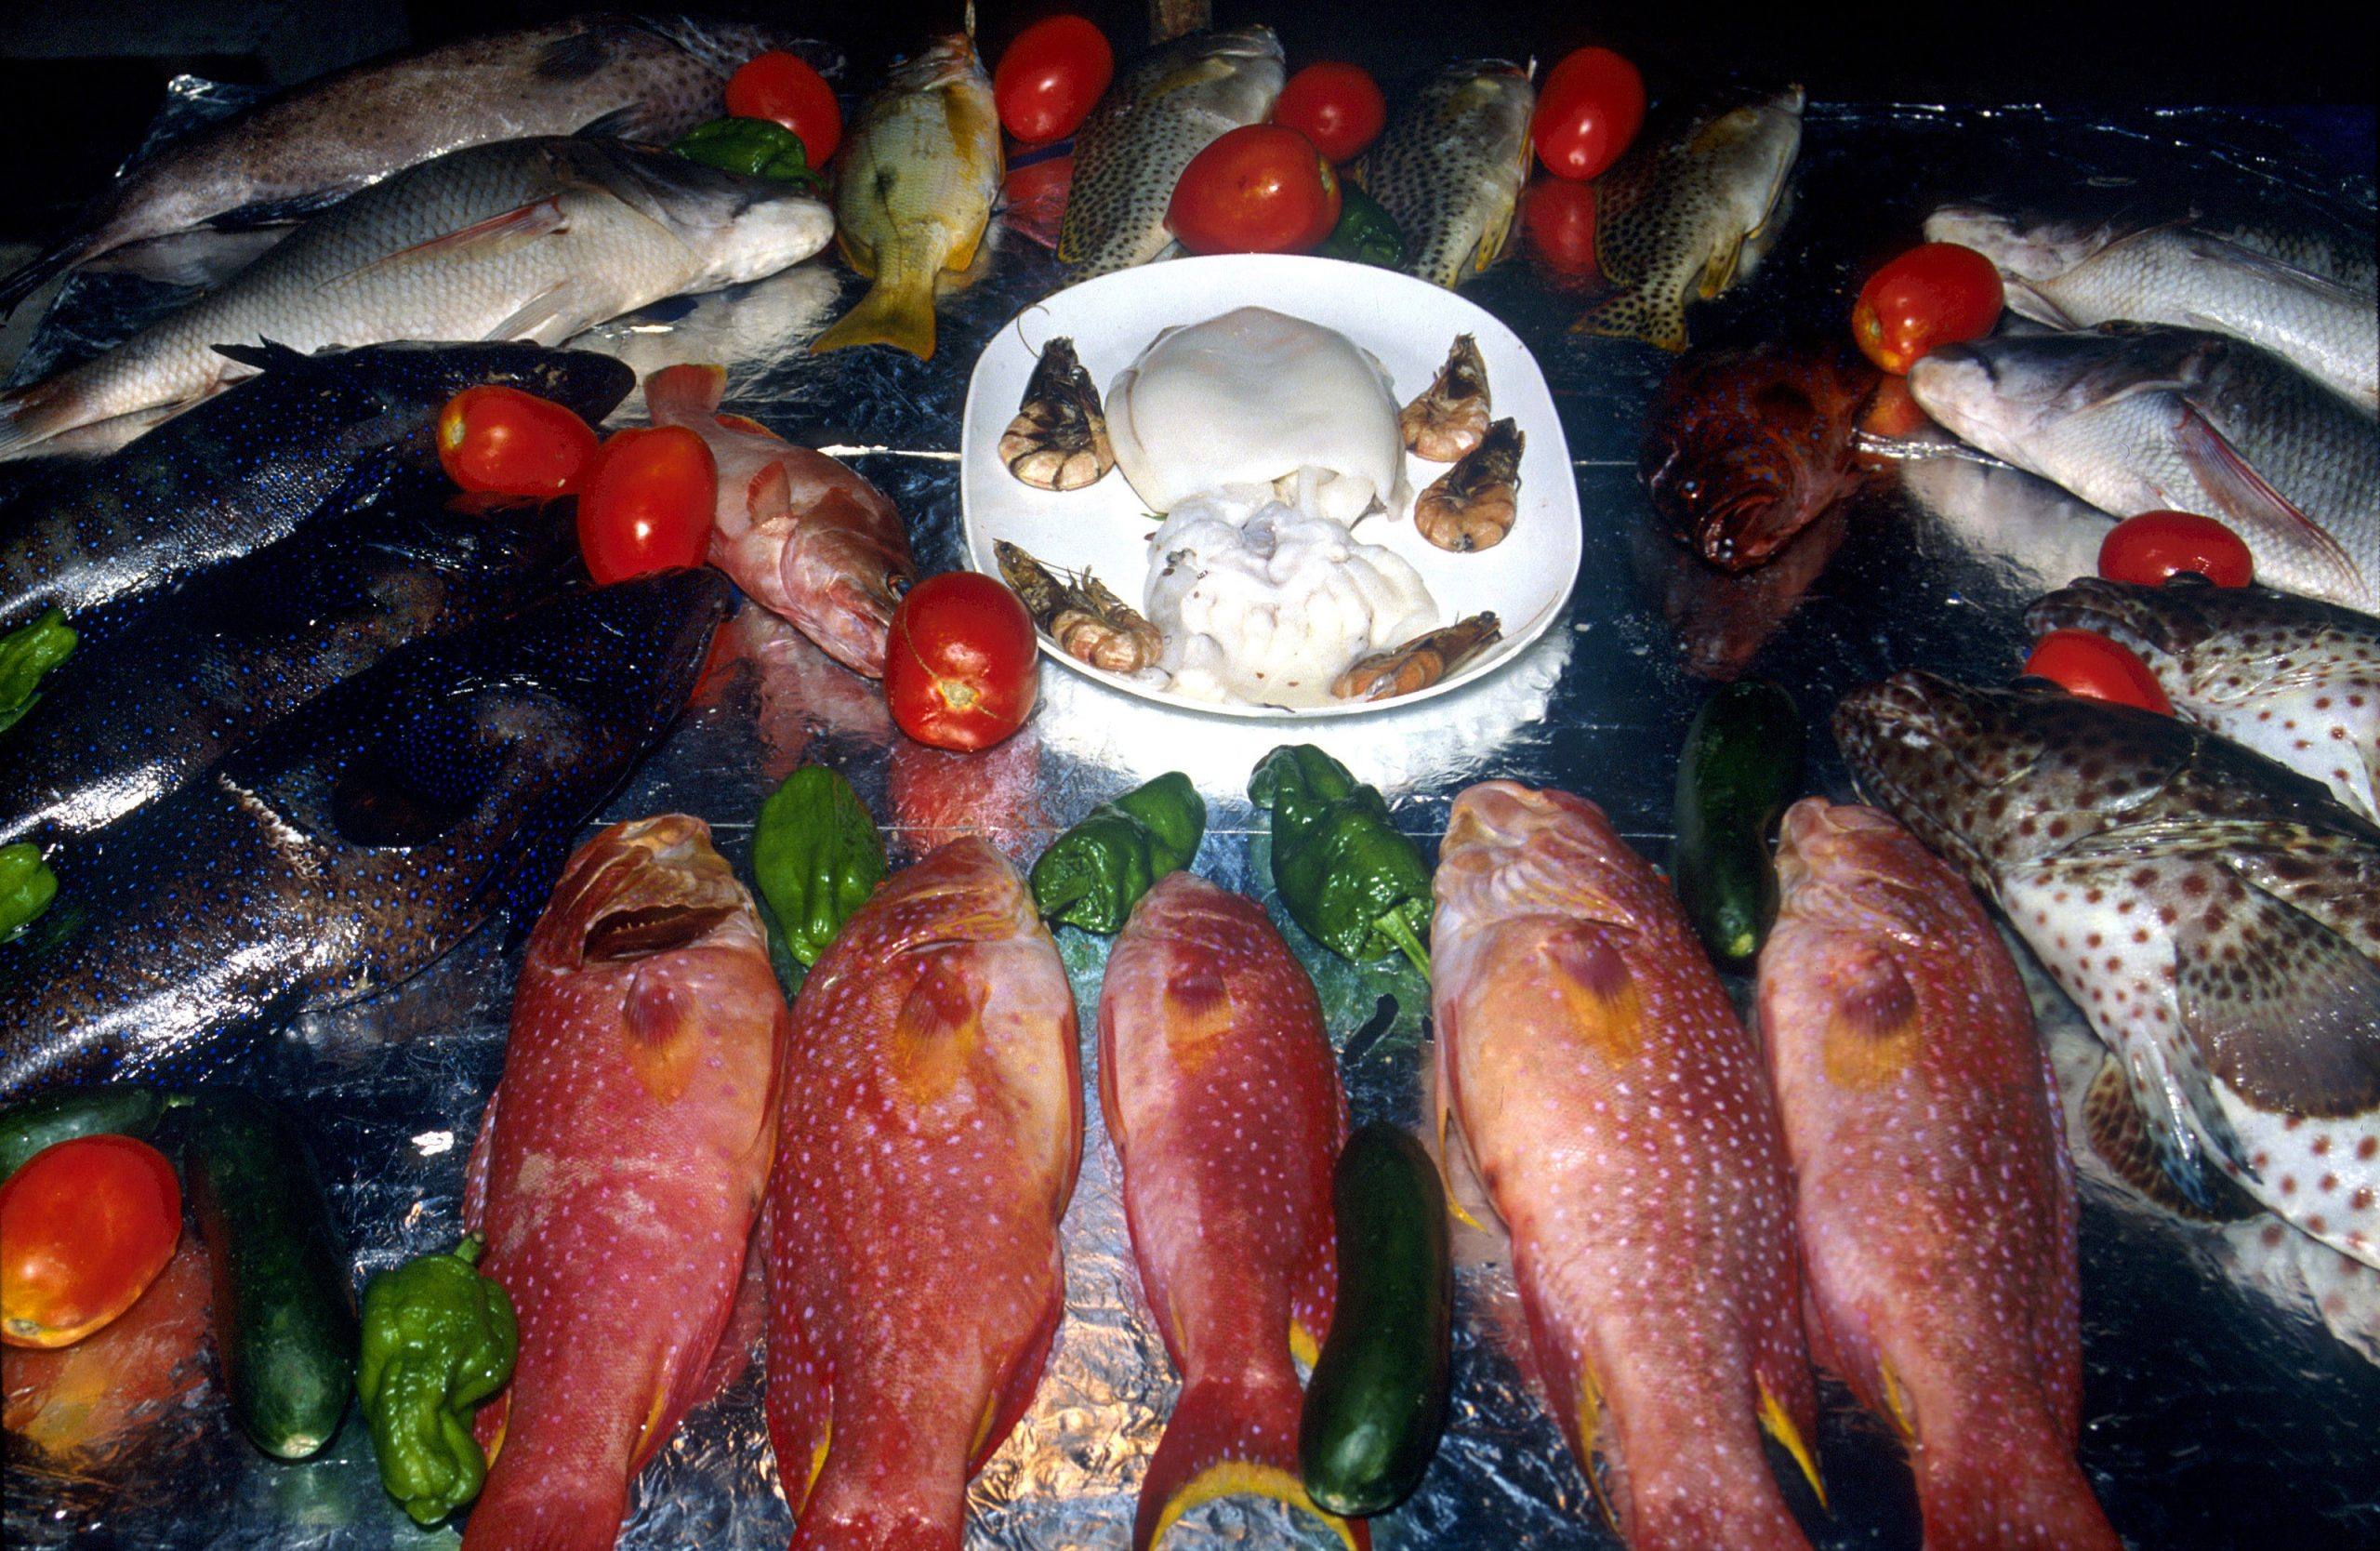 More than a third of all fish sold are actually cheaper species – Wel.nl